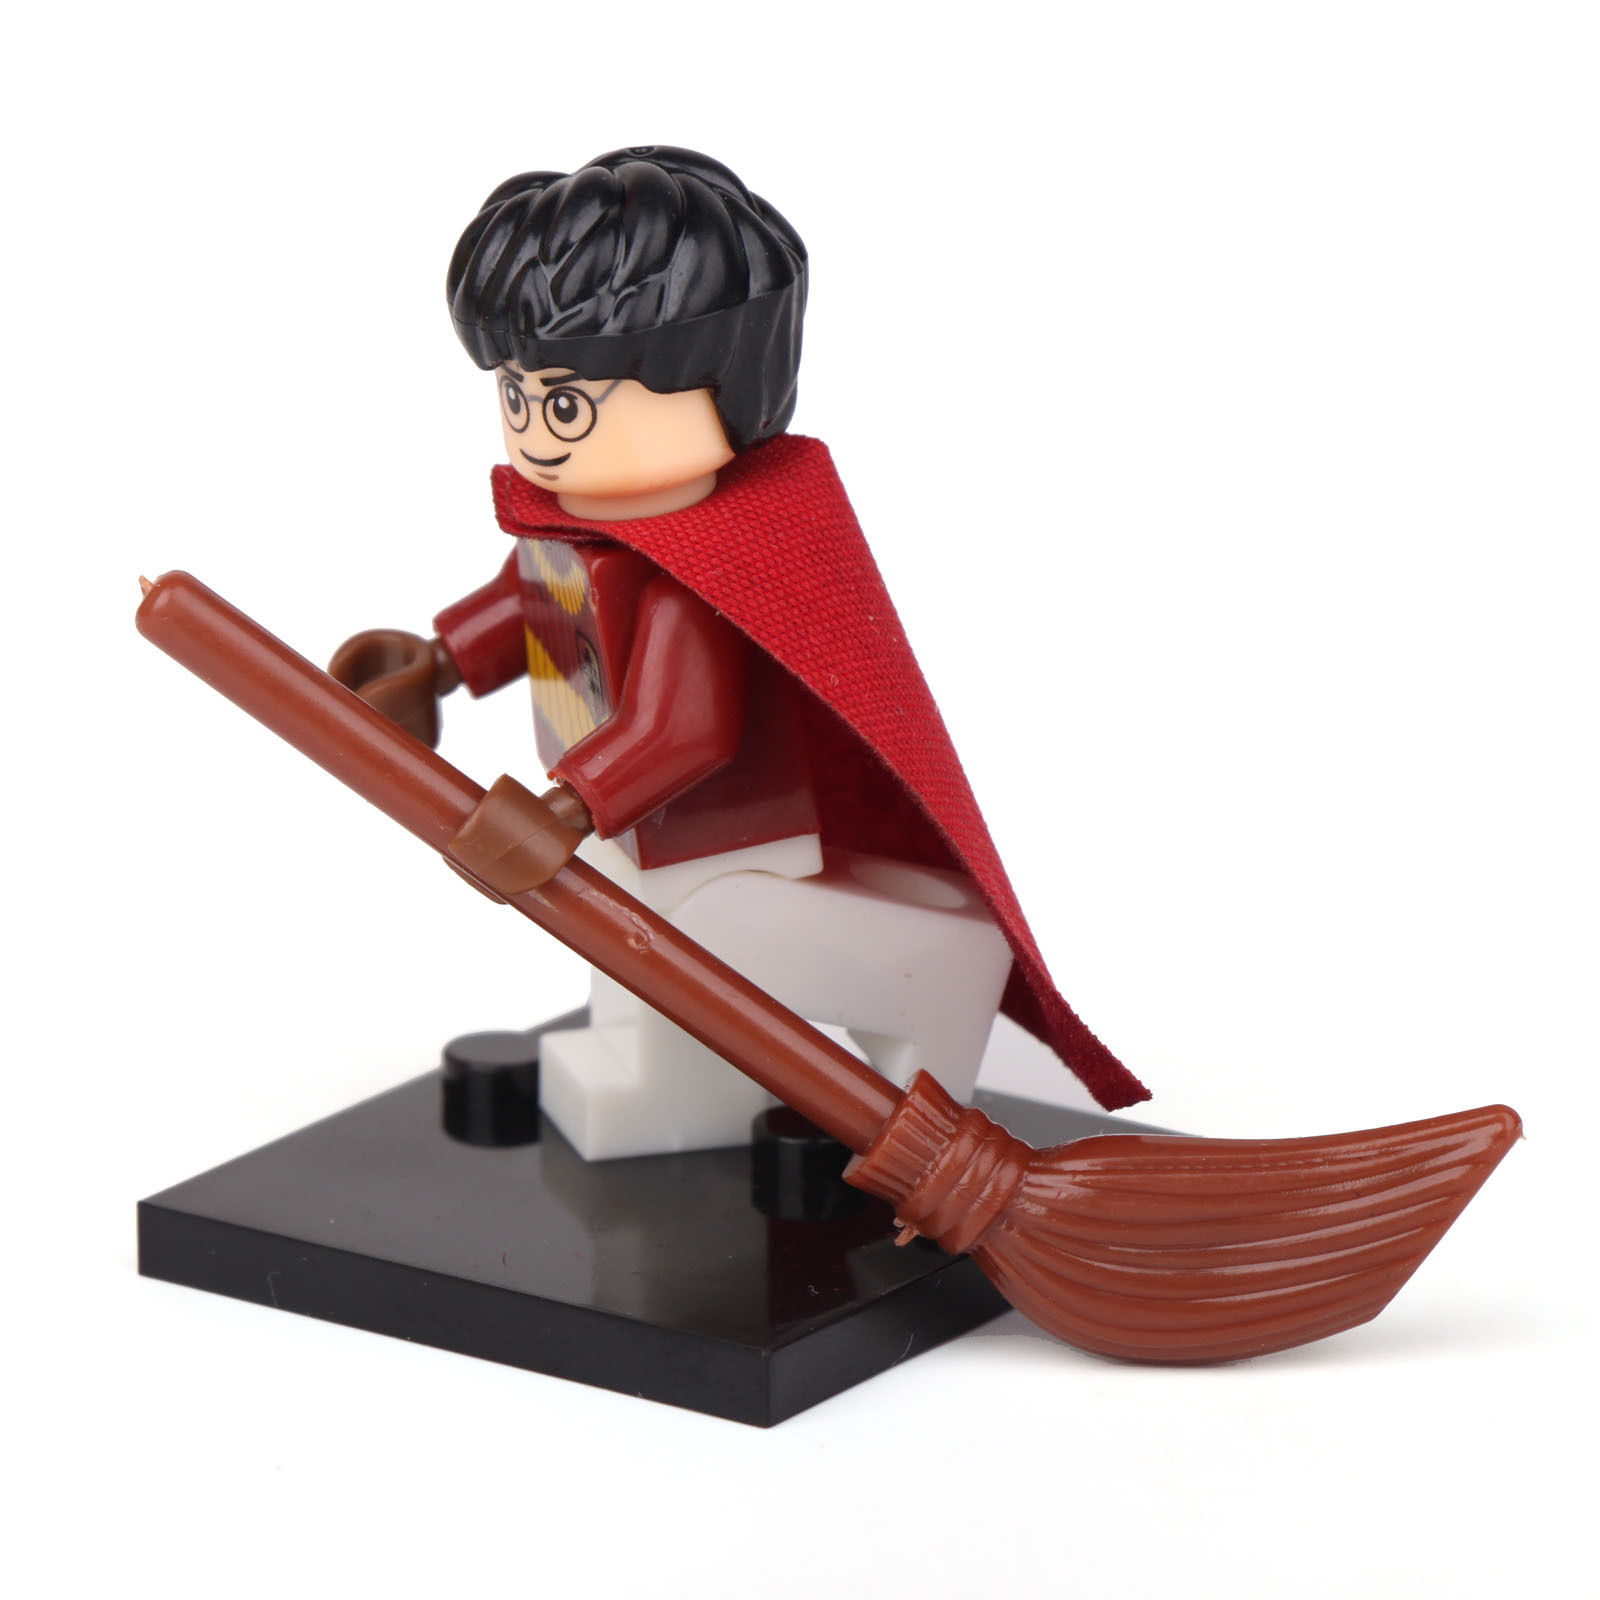 Mini figurka Harry Potter - Harry I.